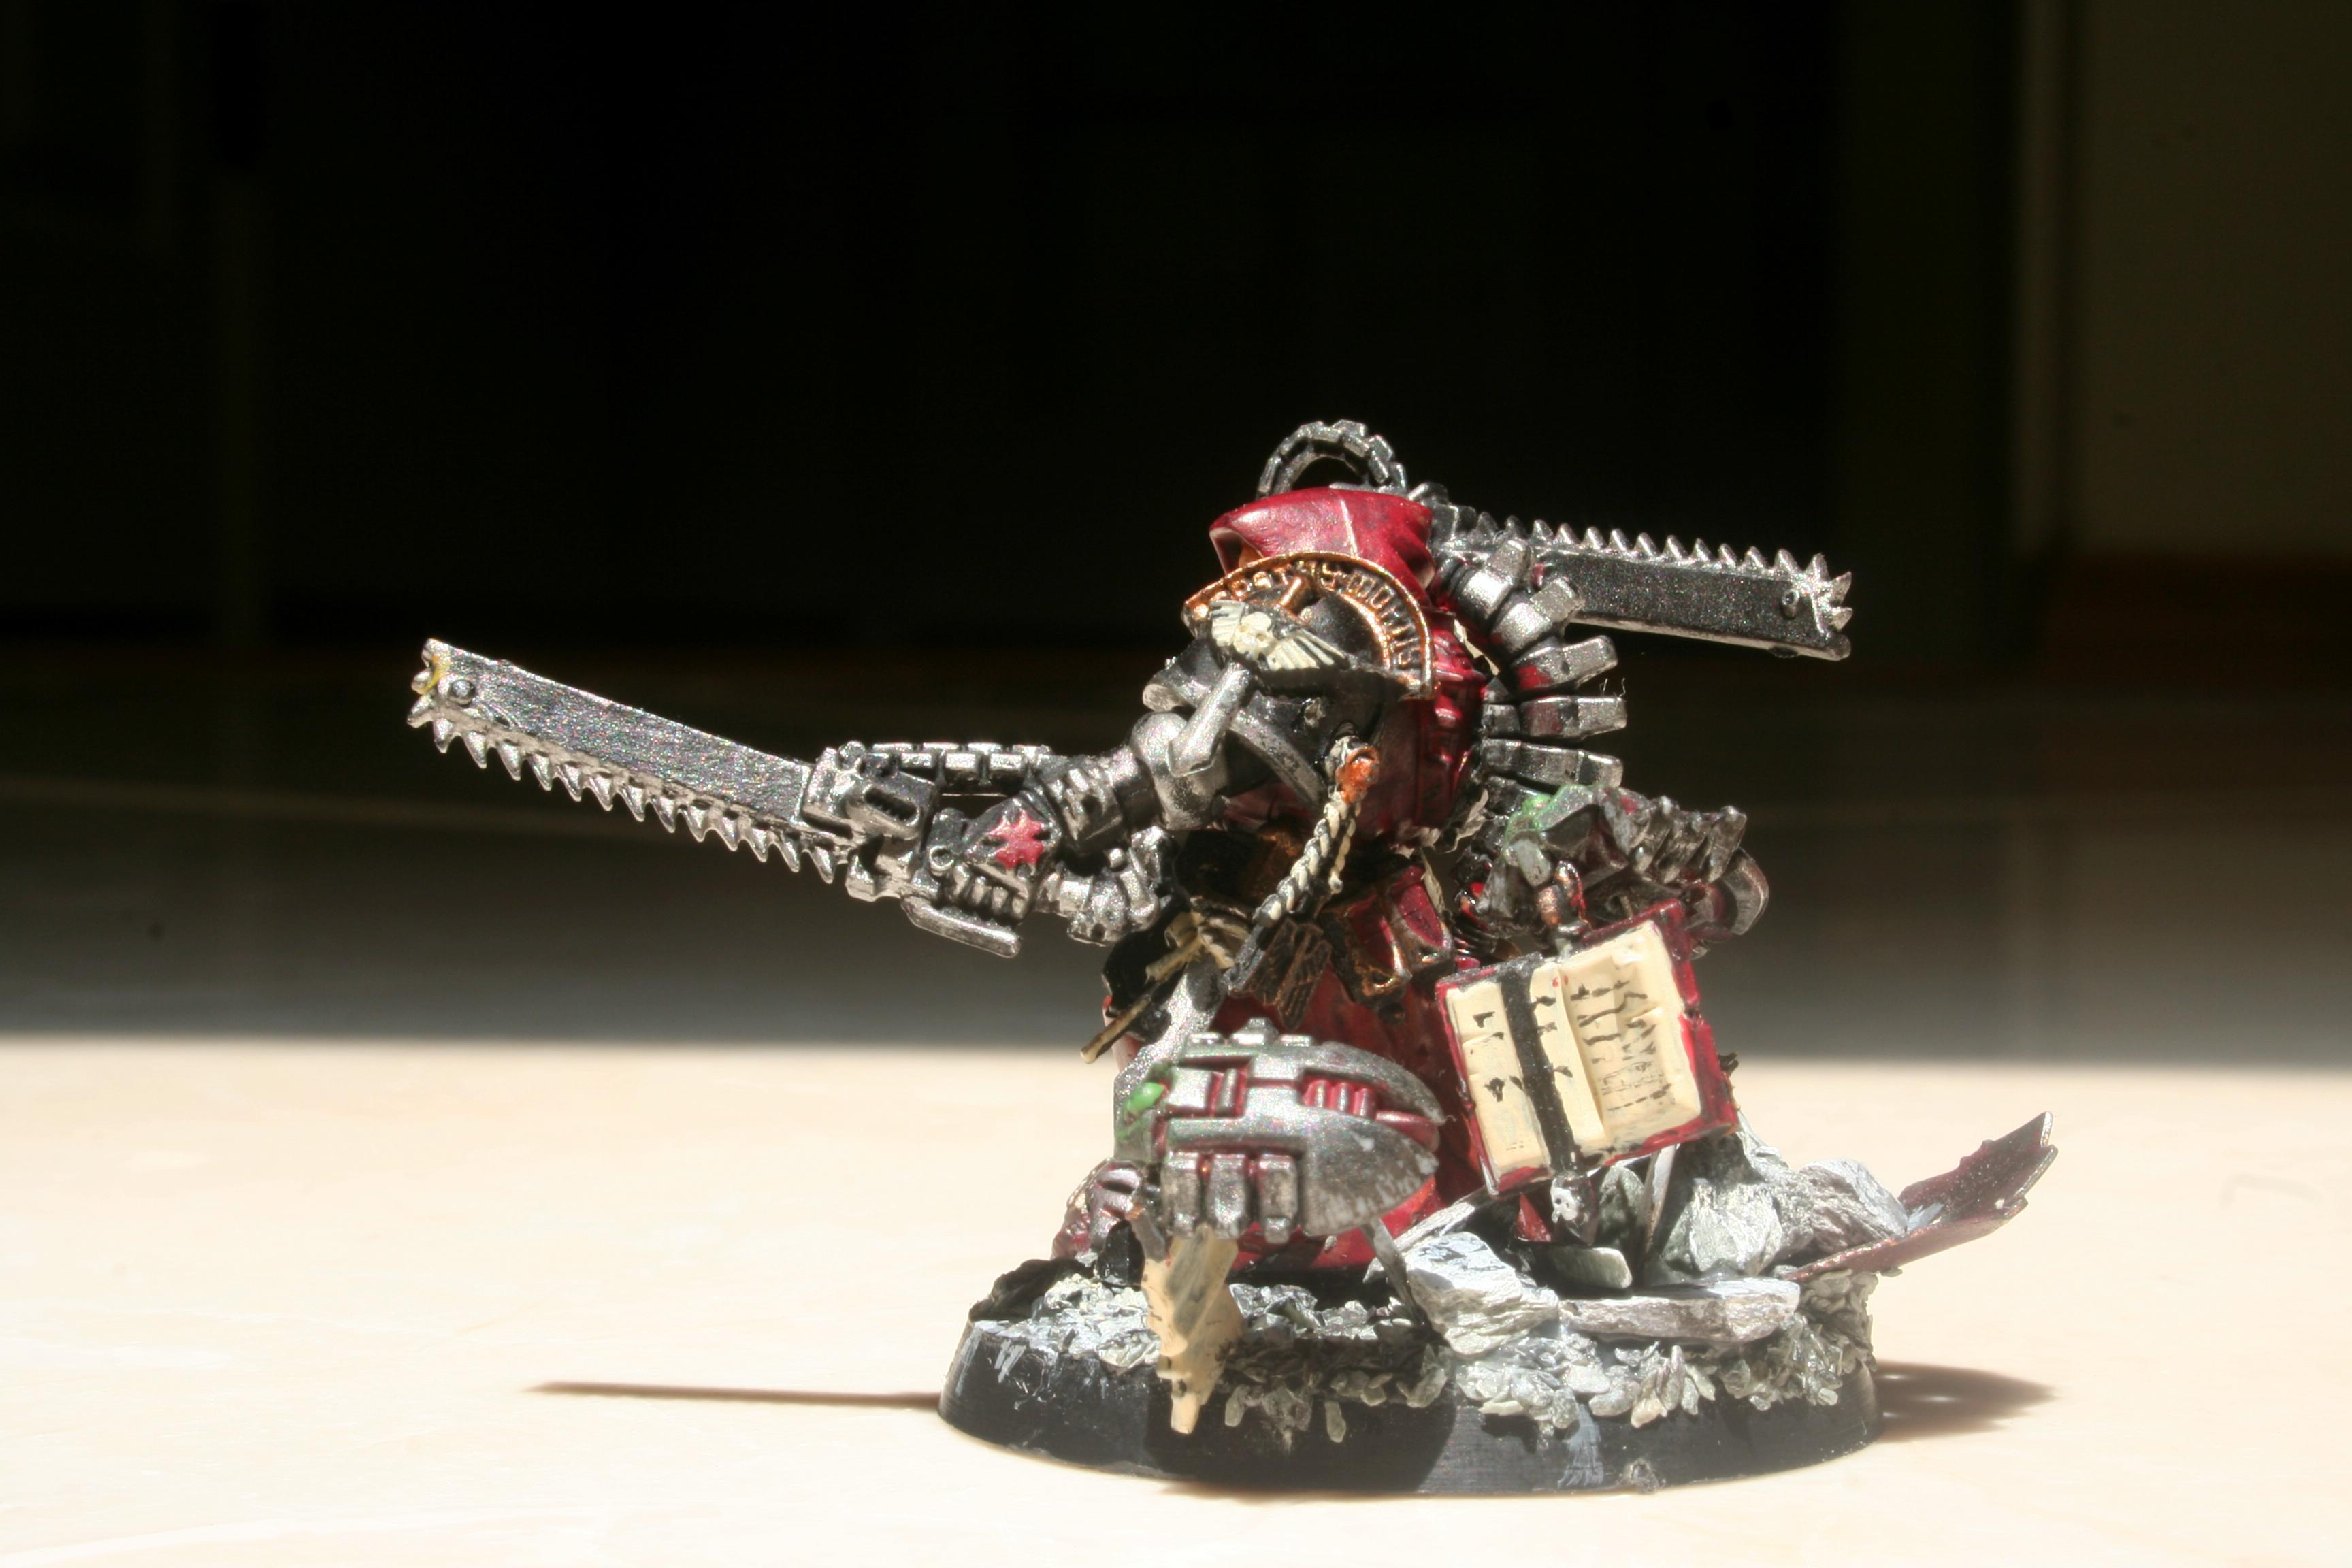 Adeptus Mechanicus, Base, Chainswords, Conversion, Dark Heresy, Necrons, Rpg, Space Marines, Tech Priest